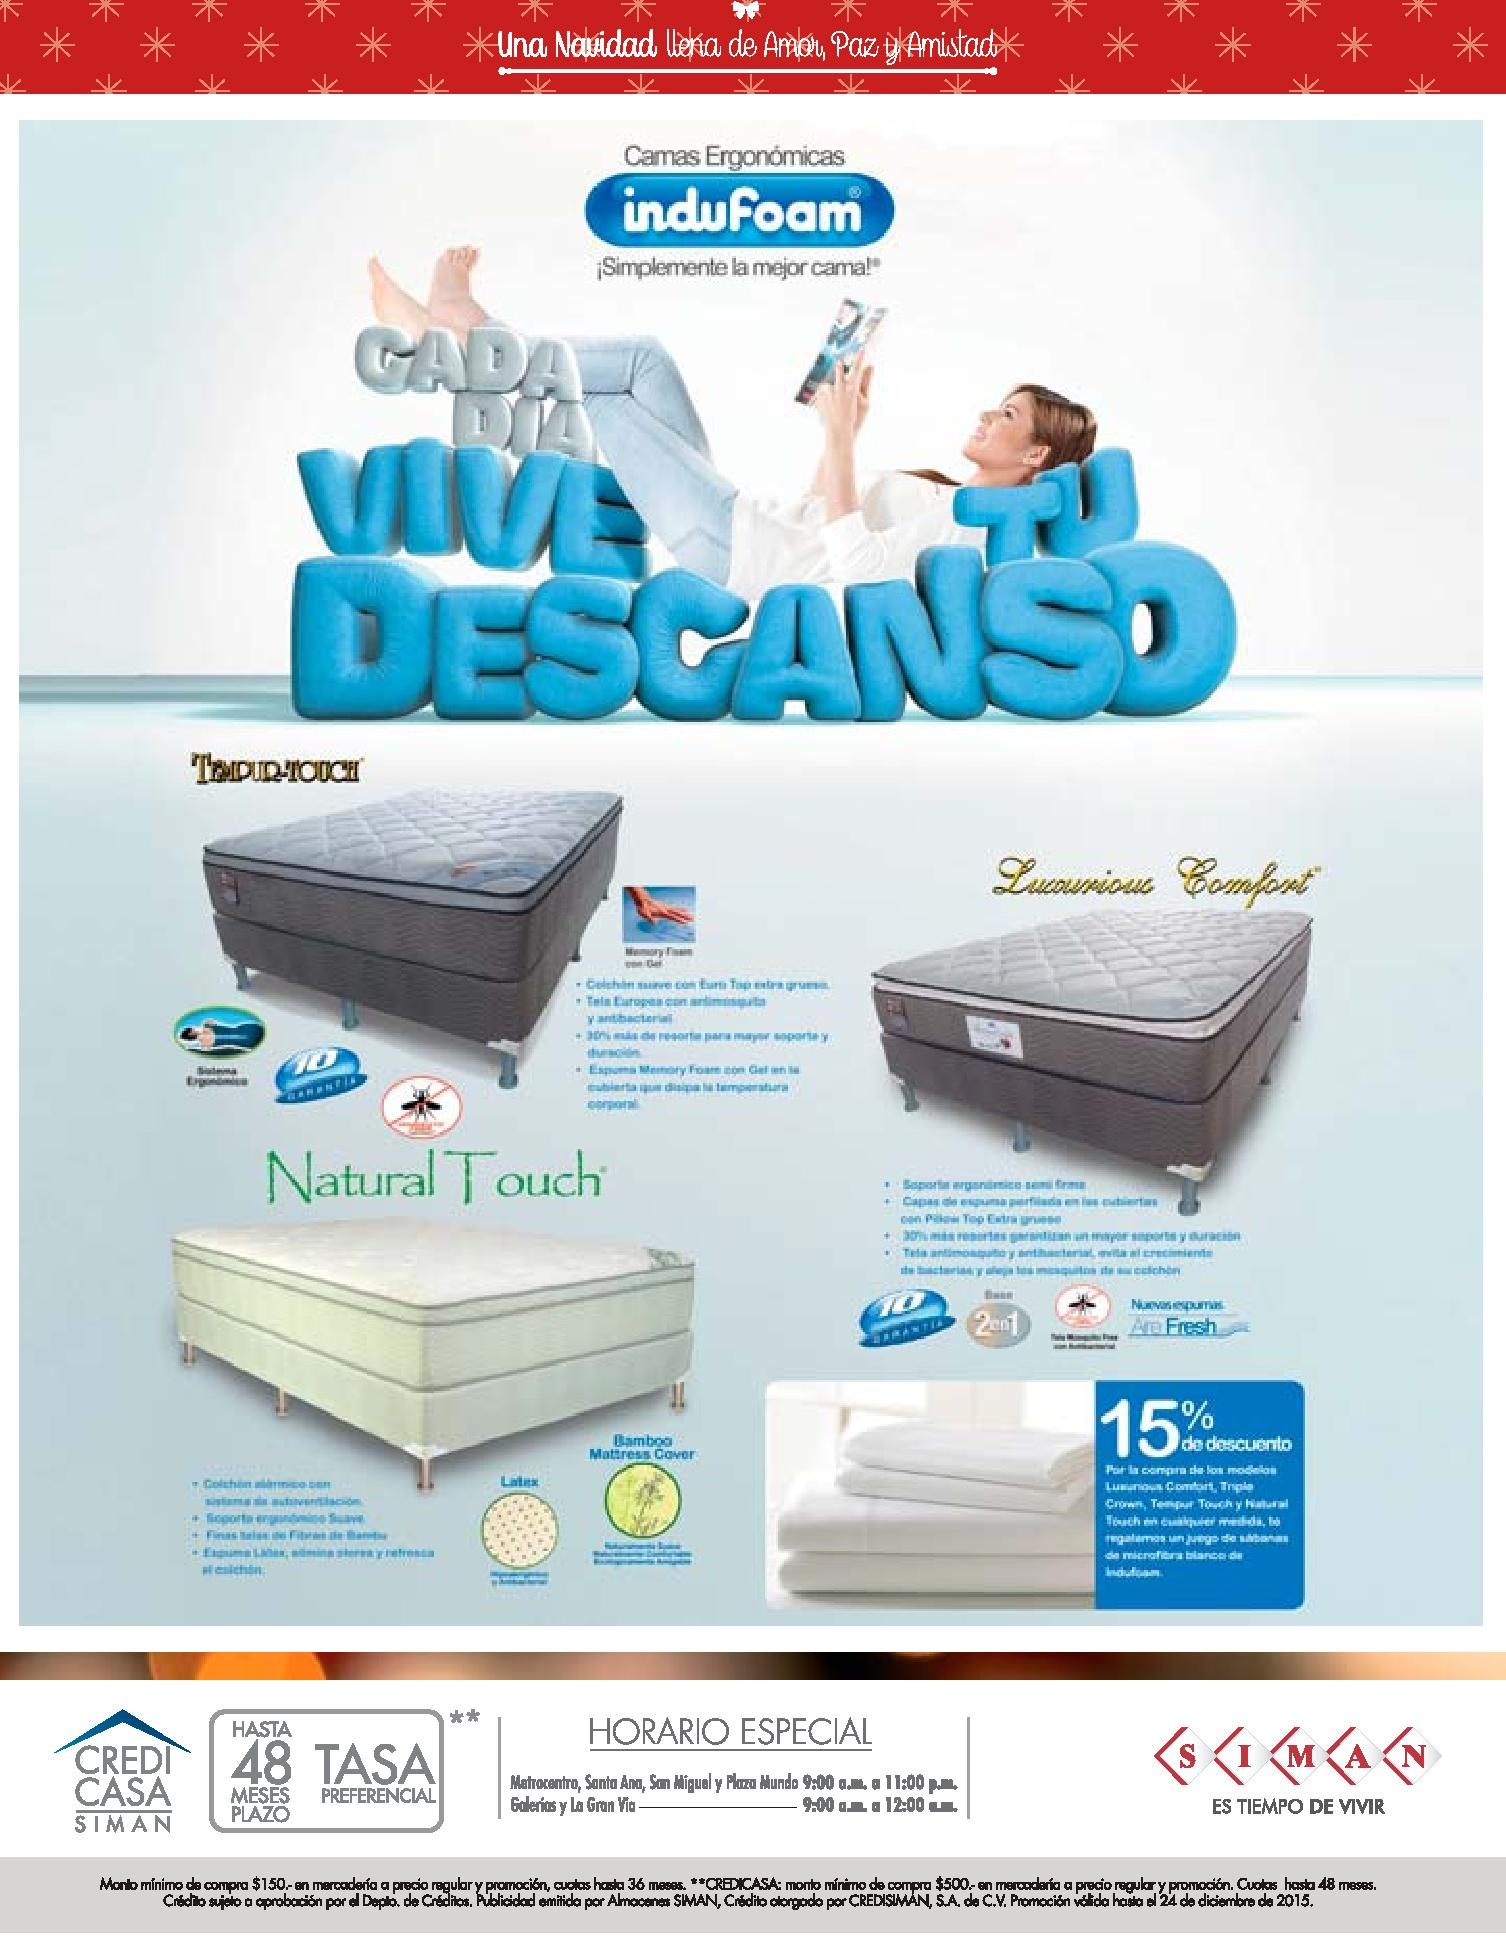 natural touch bed system for rest